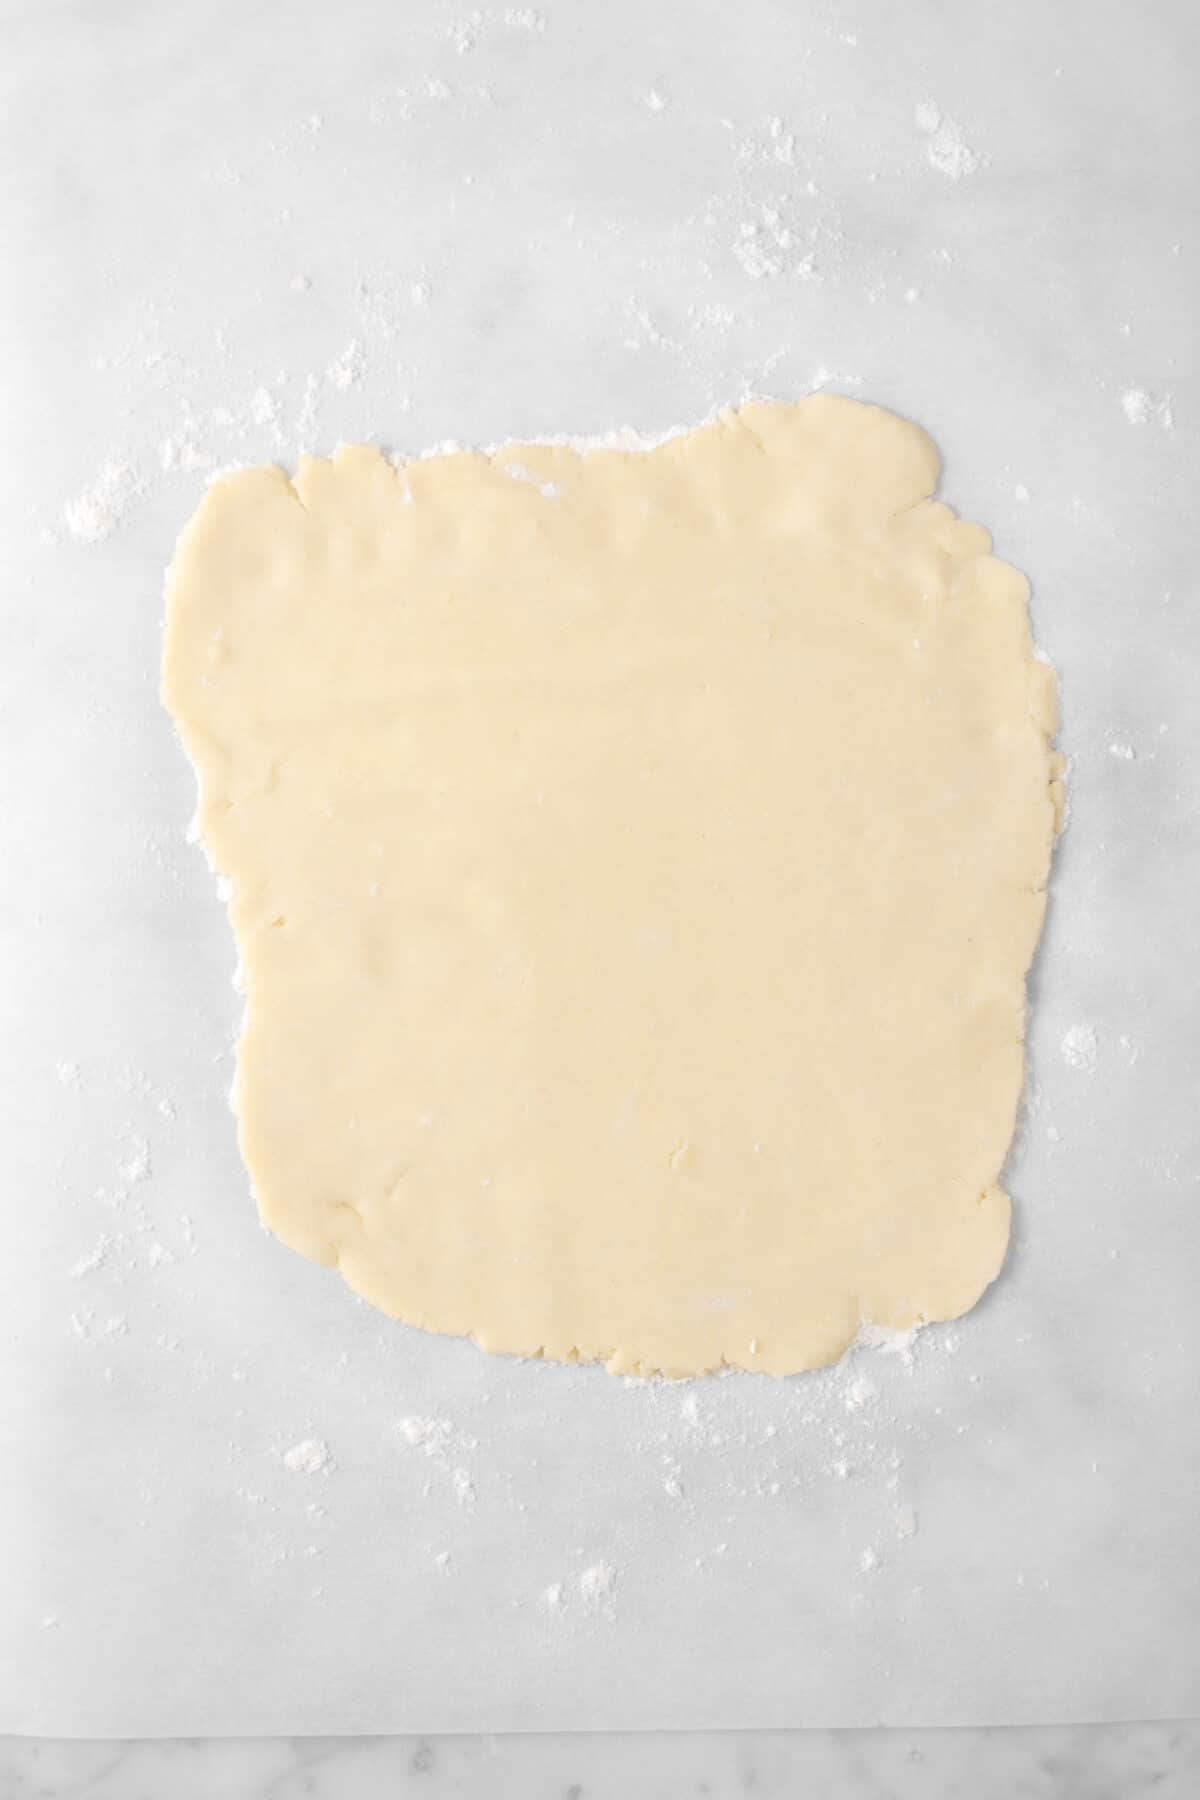 pastry dough rolled out on a piece of parchment